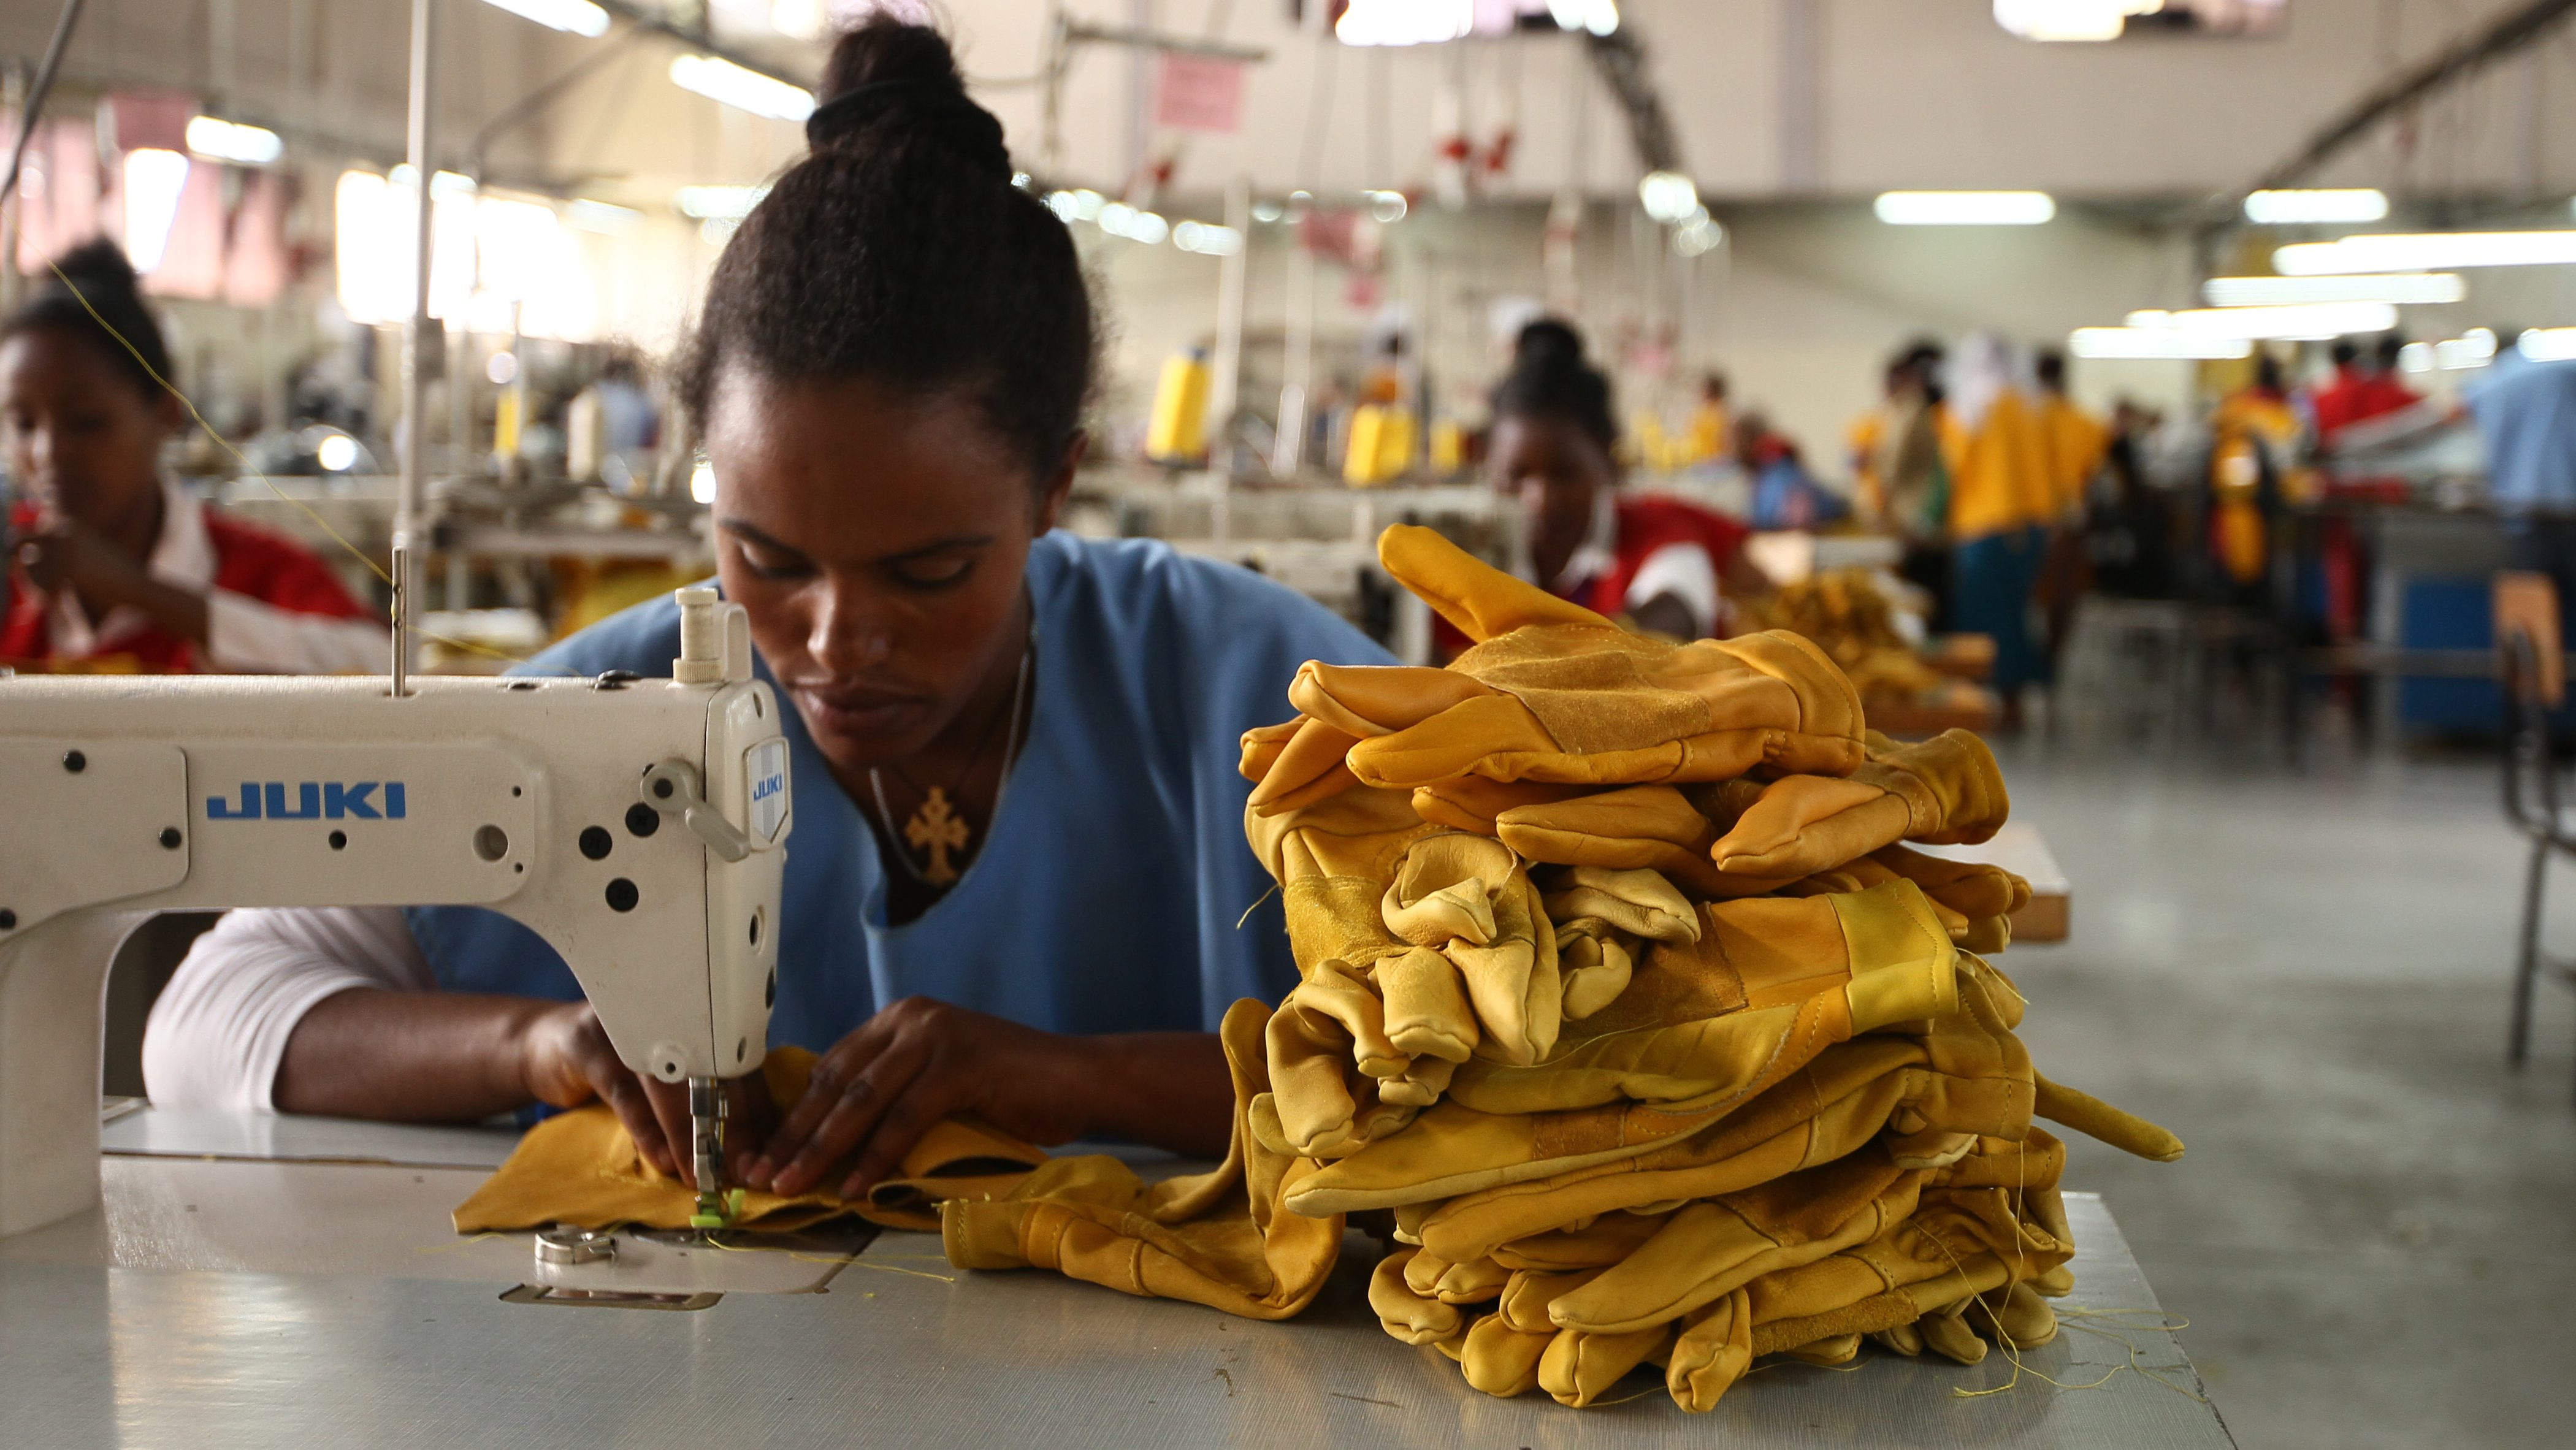 A woman stitches leather gloves at the Pittards world class leather manufacturing company in Ethiopia's capital Addis Ababa, March 22, 2016. Picture taken March 22, 2016.